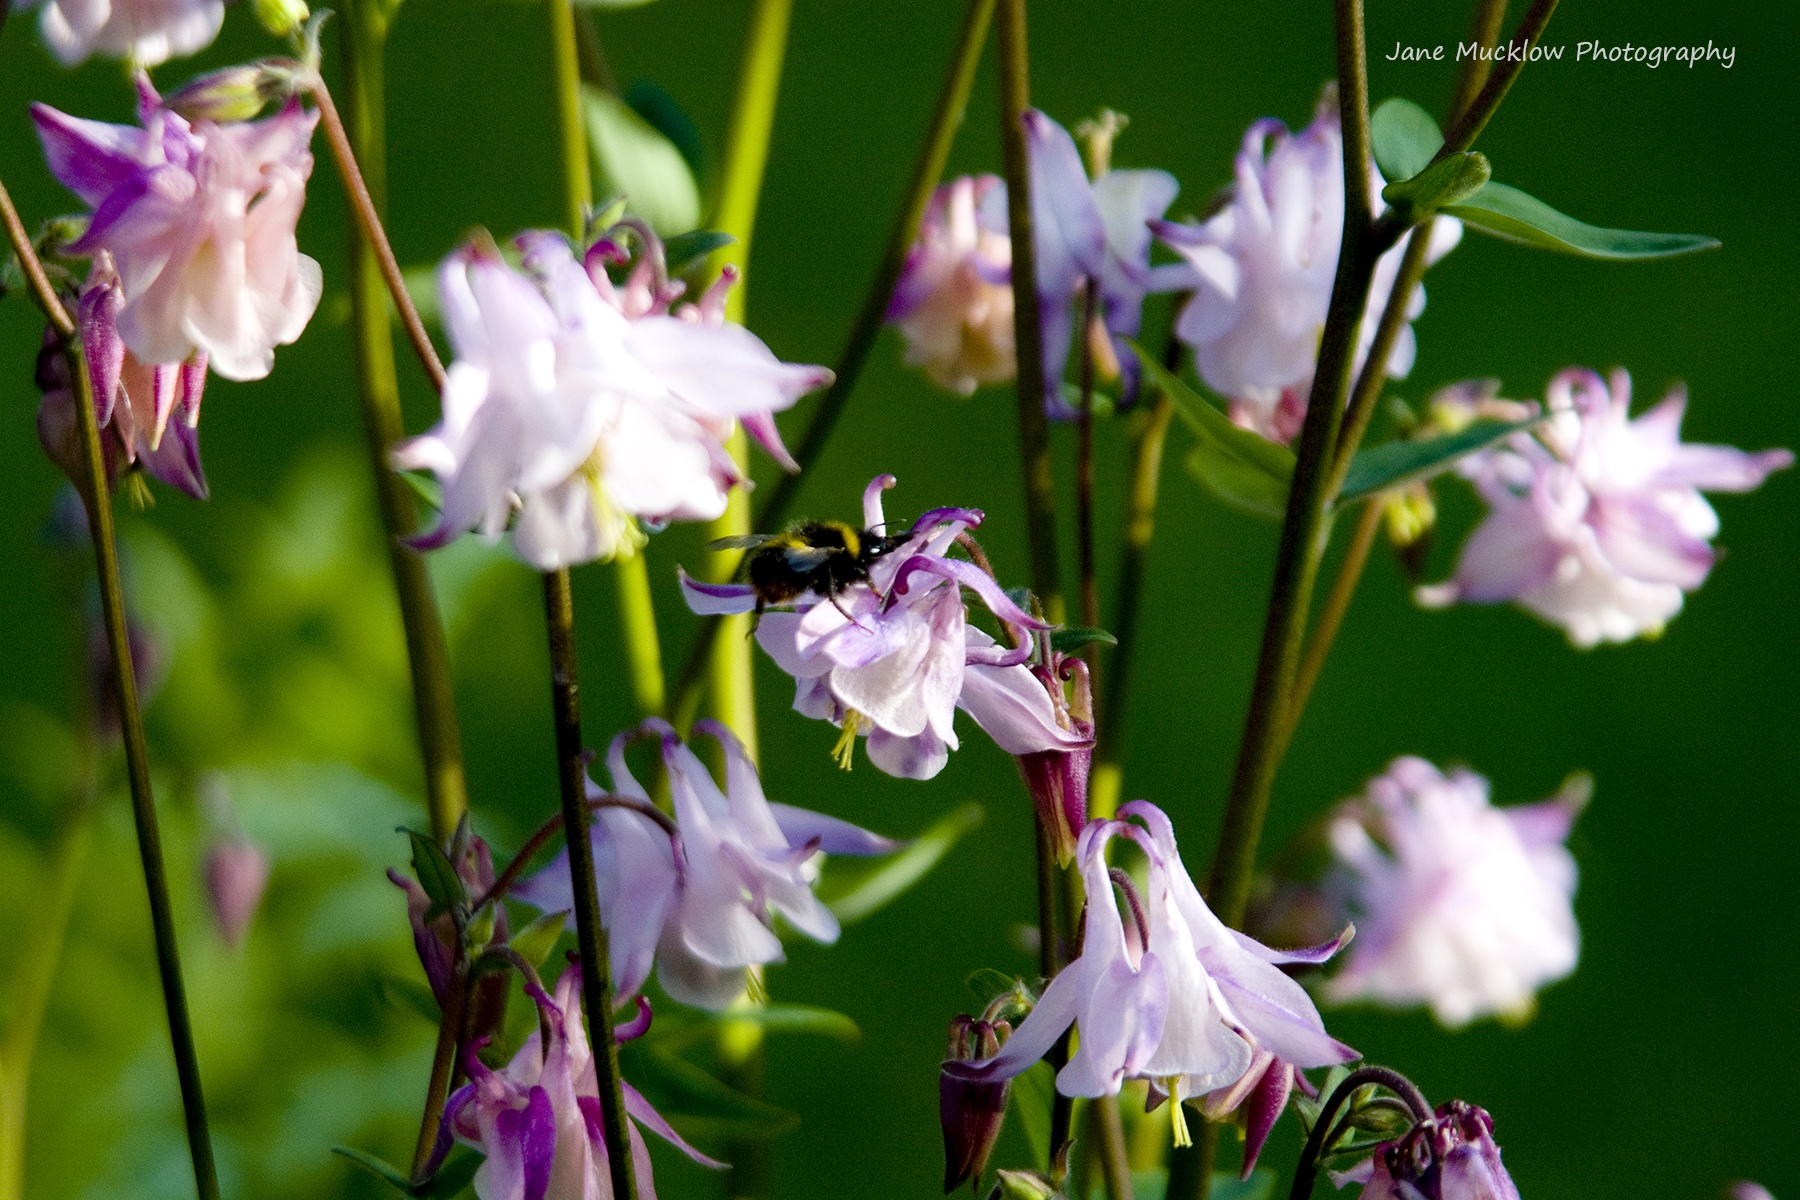 Photograph of pinky-white aquilegia flowers, with a bee, by Jane Mucklow